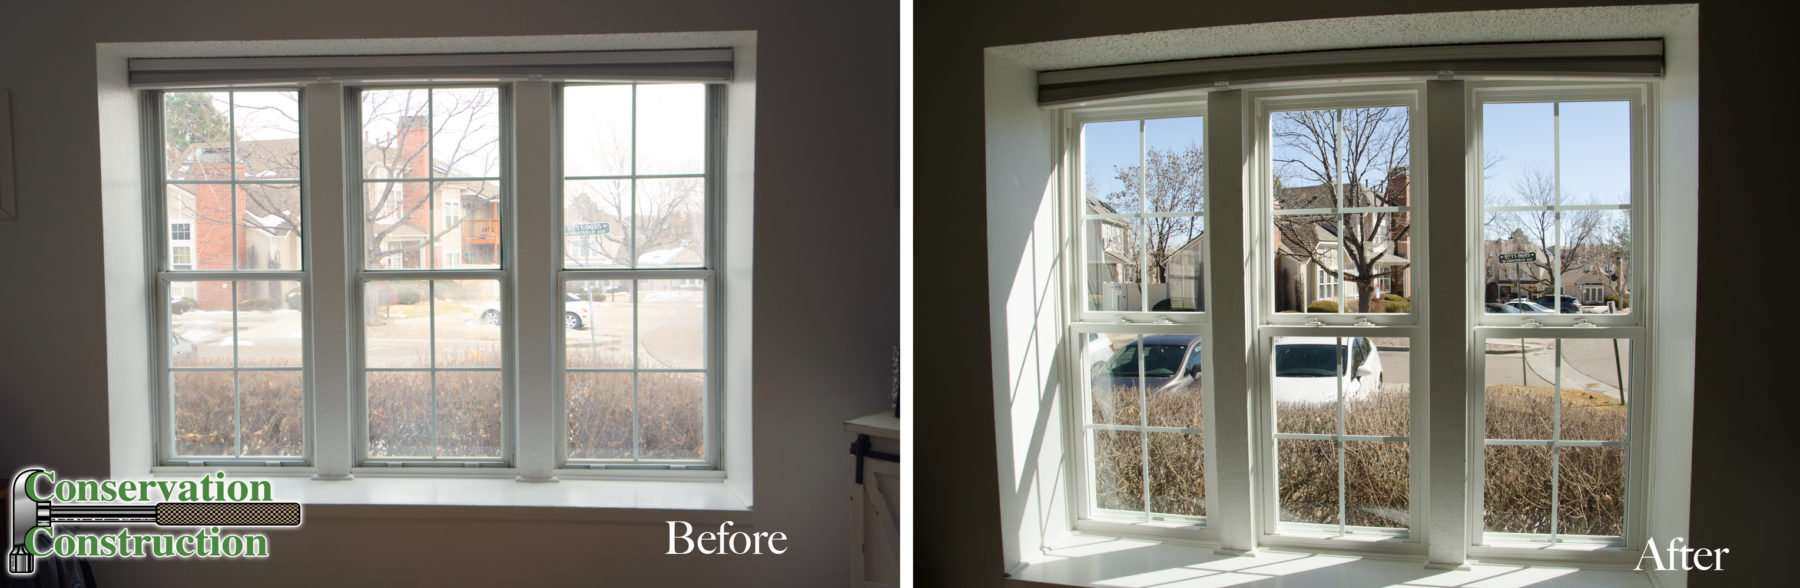 Before and After Windows, Conservation Construction, Window Replacement